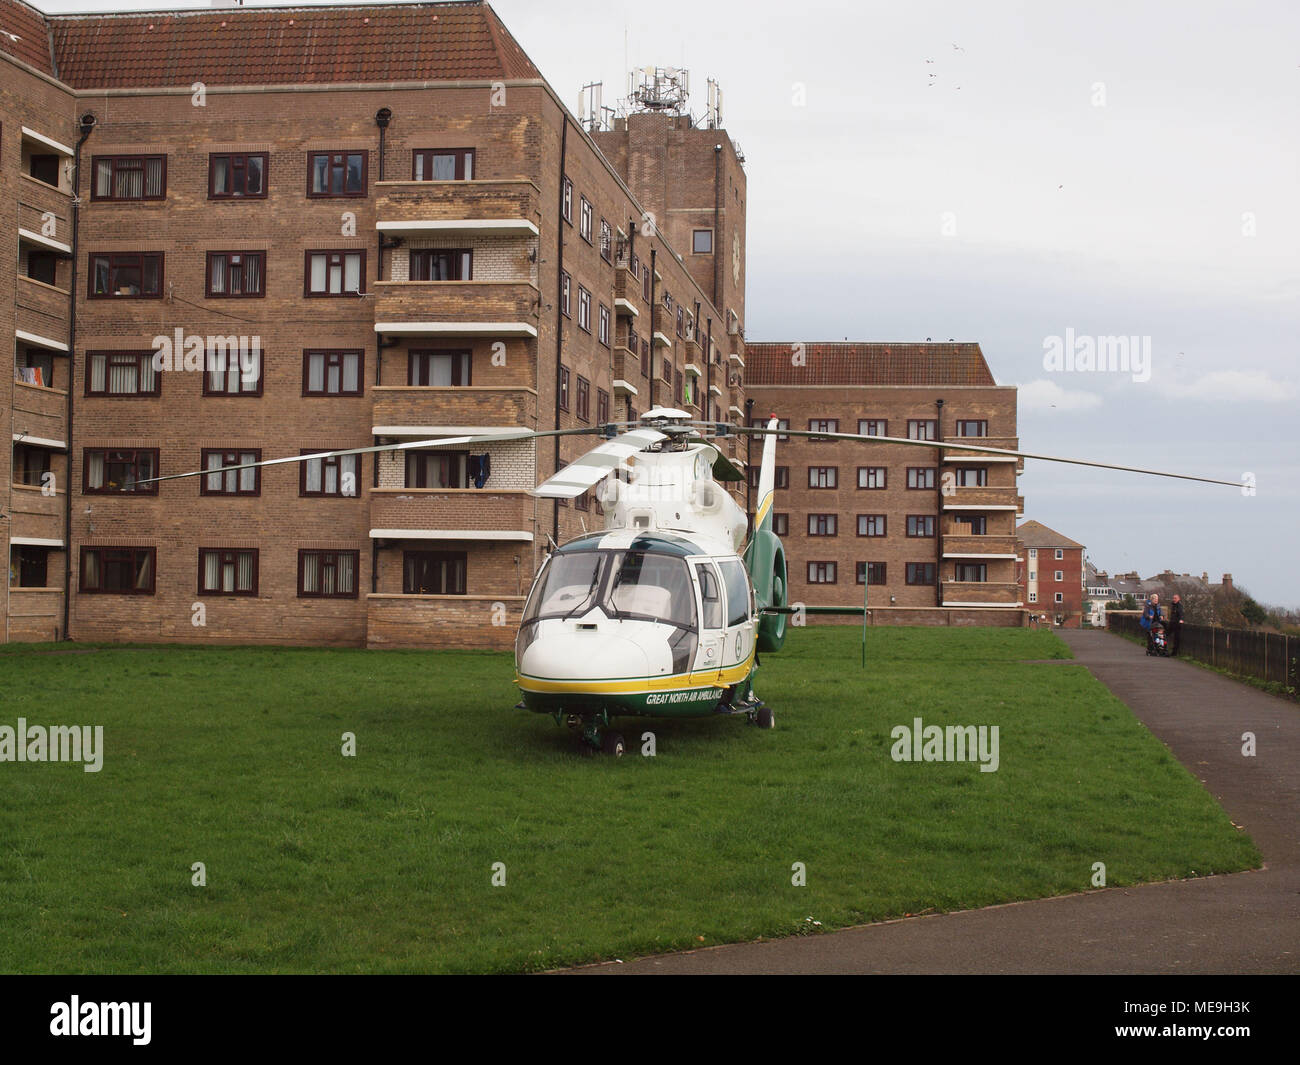 A ground floor flat fire at 'Knotts Flats in Tynemouth on the banks of the river Tyne in North Tyneside, near Newcastle. - Stock Image